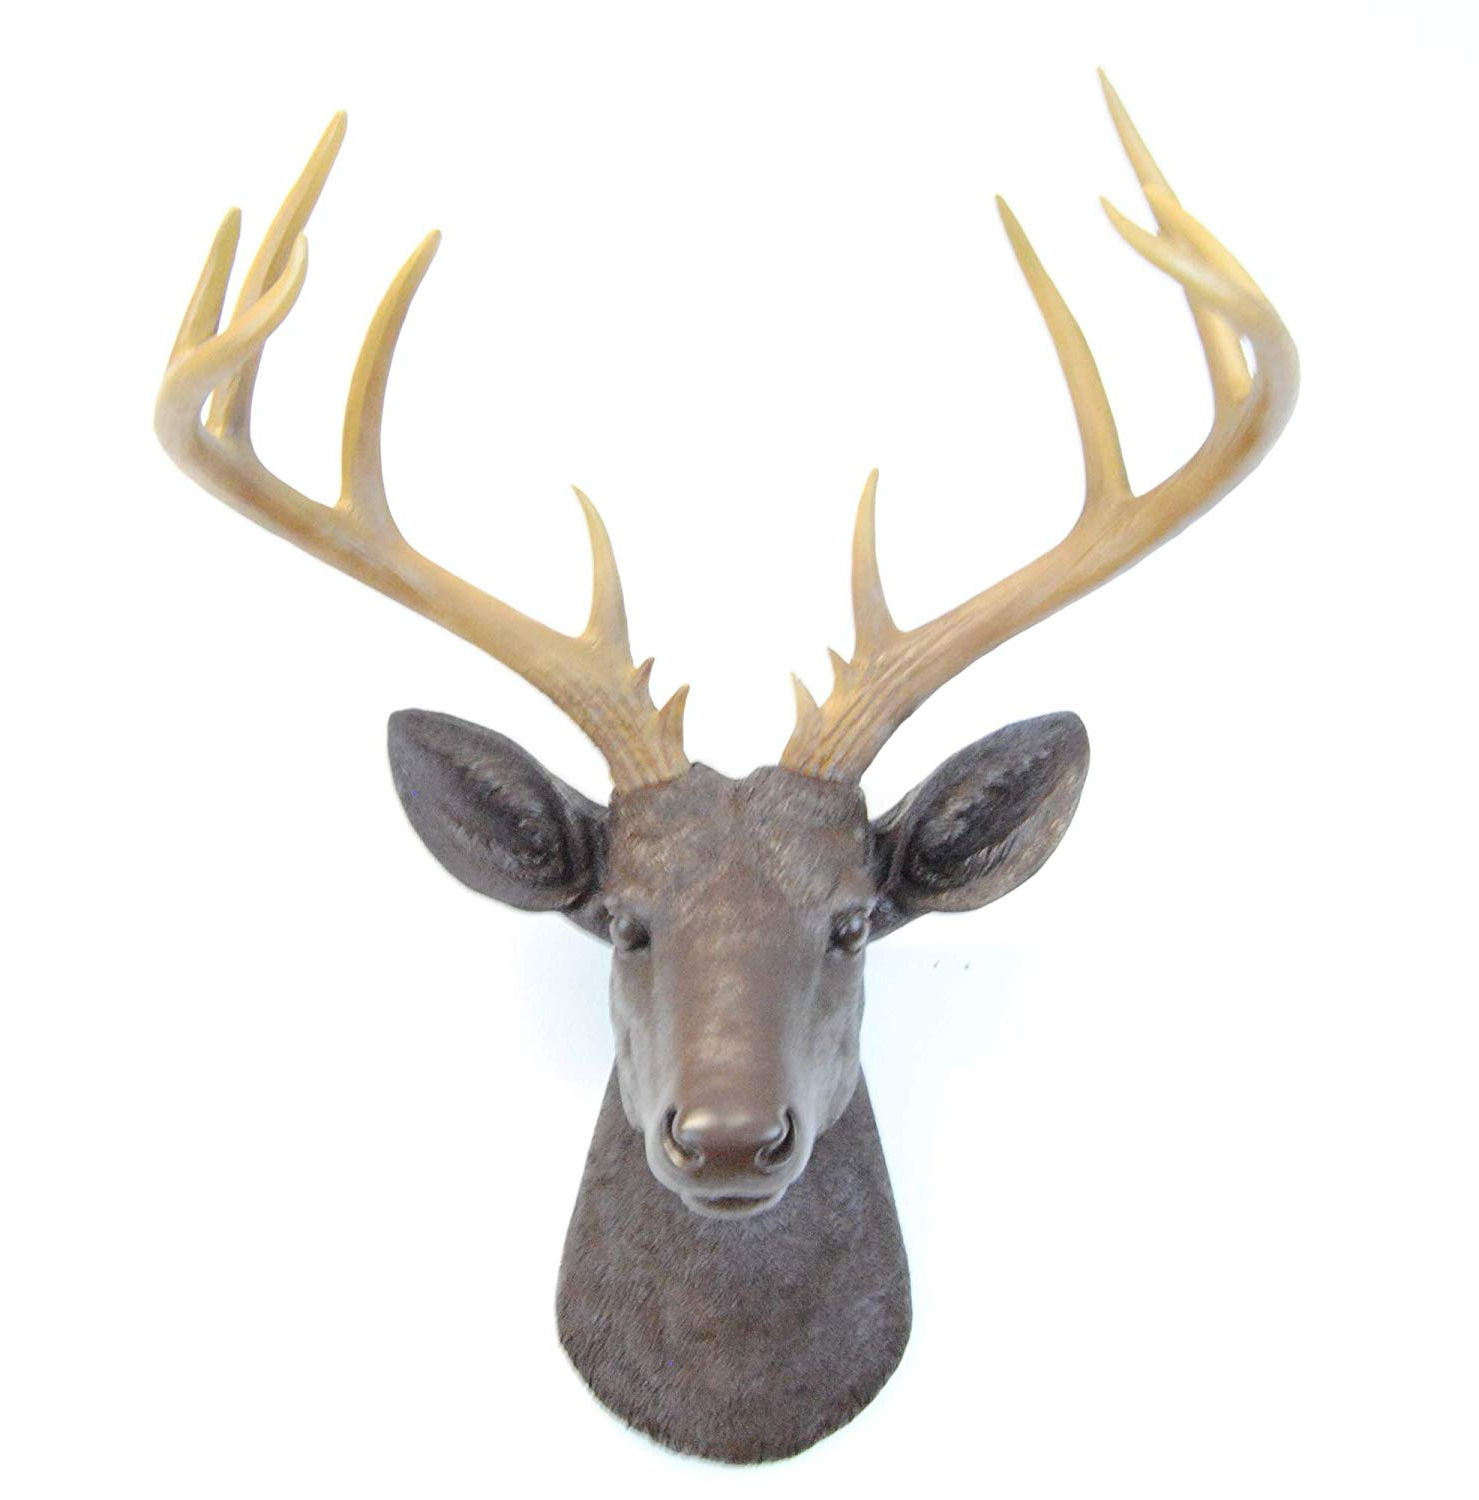 Best And Newest Large Deer Head Faux Taxidermy Wall Decor Regarding Amazon: Near And Deer 14 Point Fake Deer Head – Large Faux (Gallery 9 of 20)